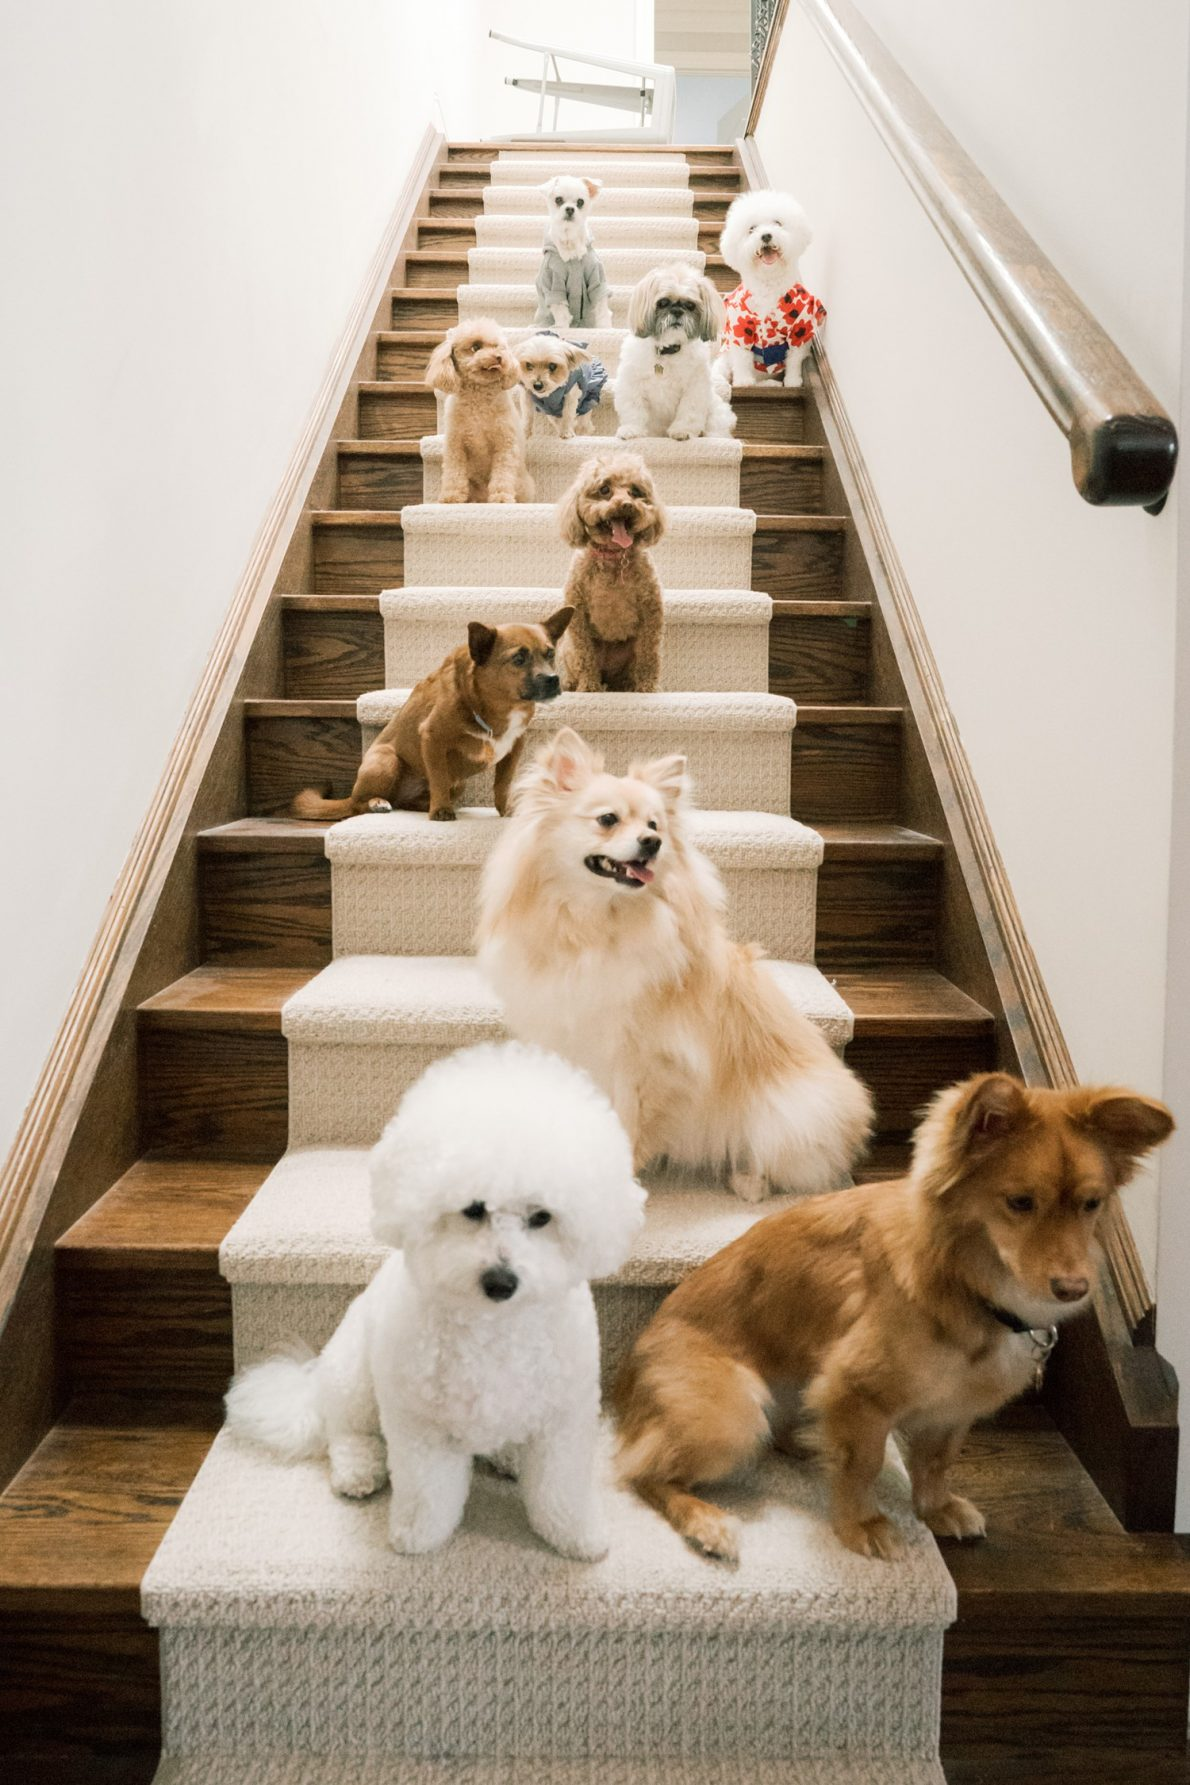 Puppies on stairs at Toronto Dog Birthday Party by Toronto Pet Photographer